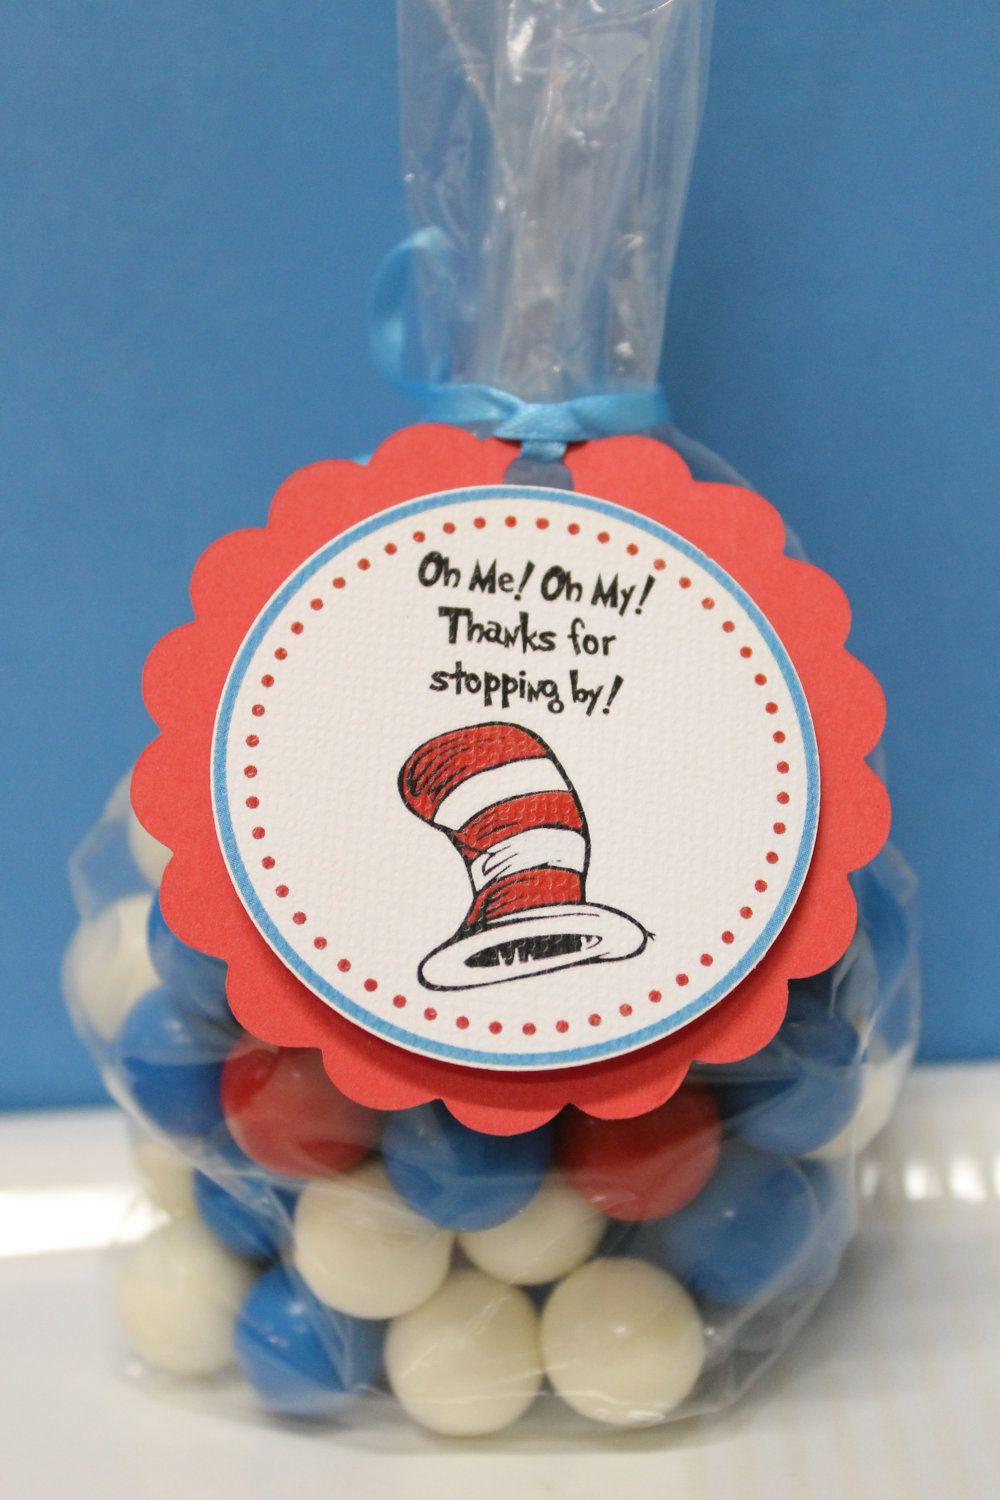 Dr Seuss Baby Shower Birthday Party Favor By Expressionspaperie 8 00 Dr Seuss Baby Shower Seuss Baby Shower Suess Baby Shower